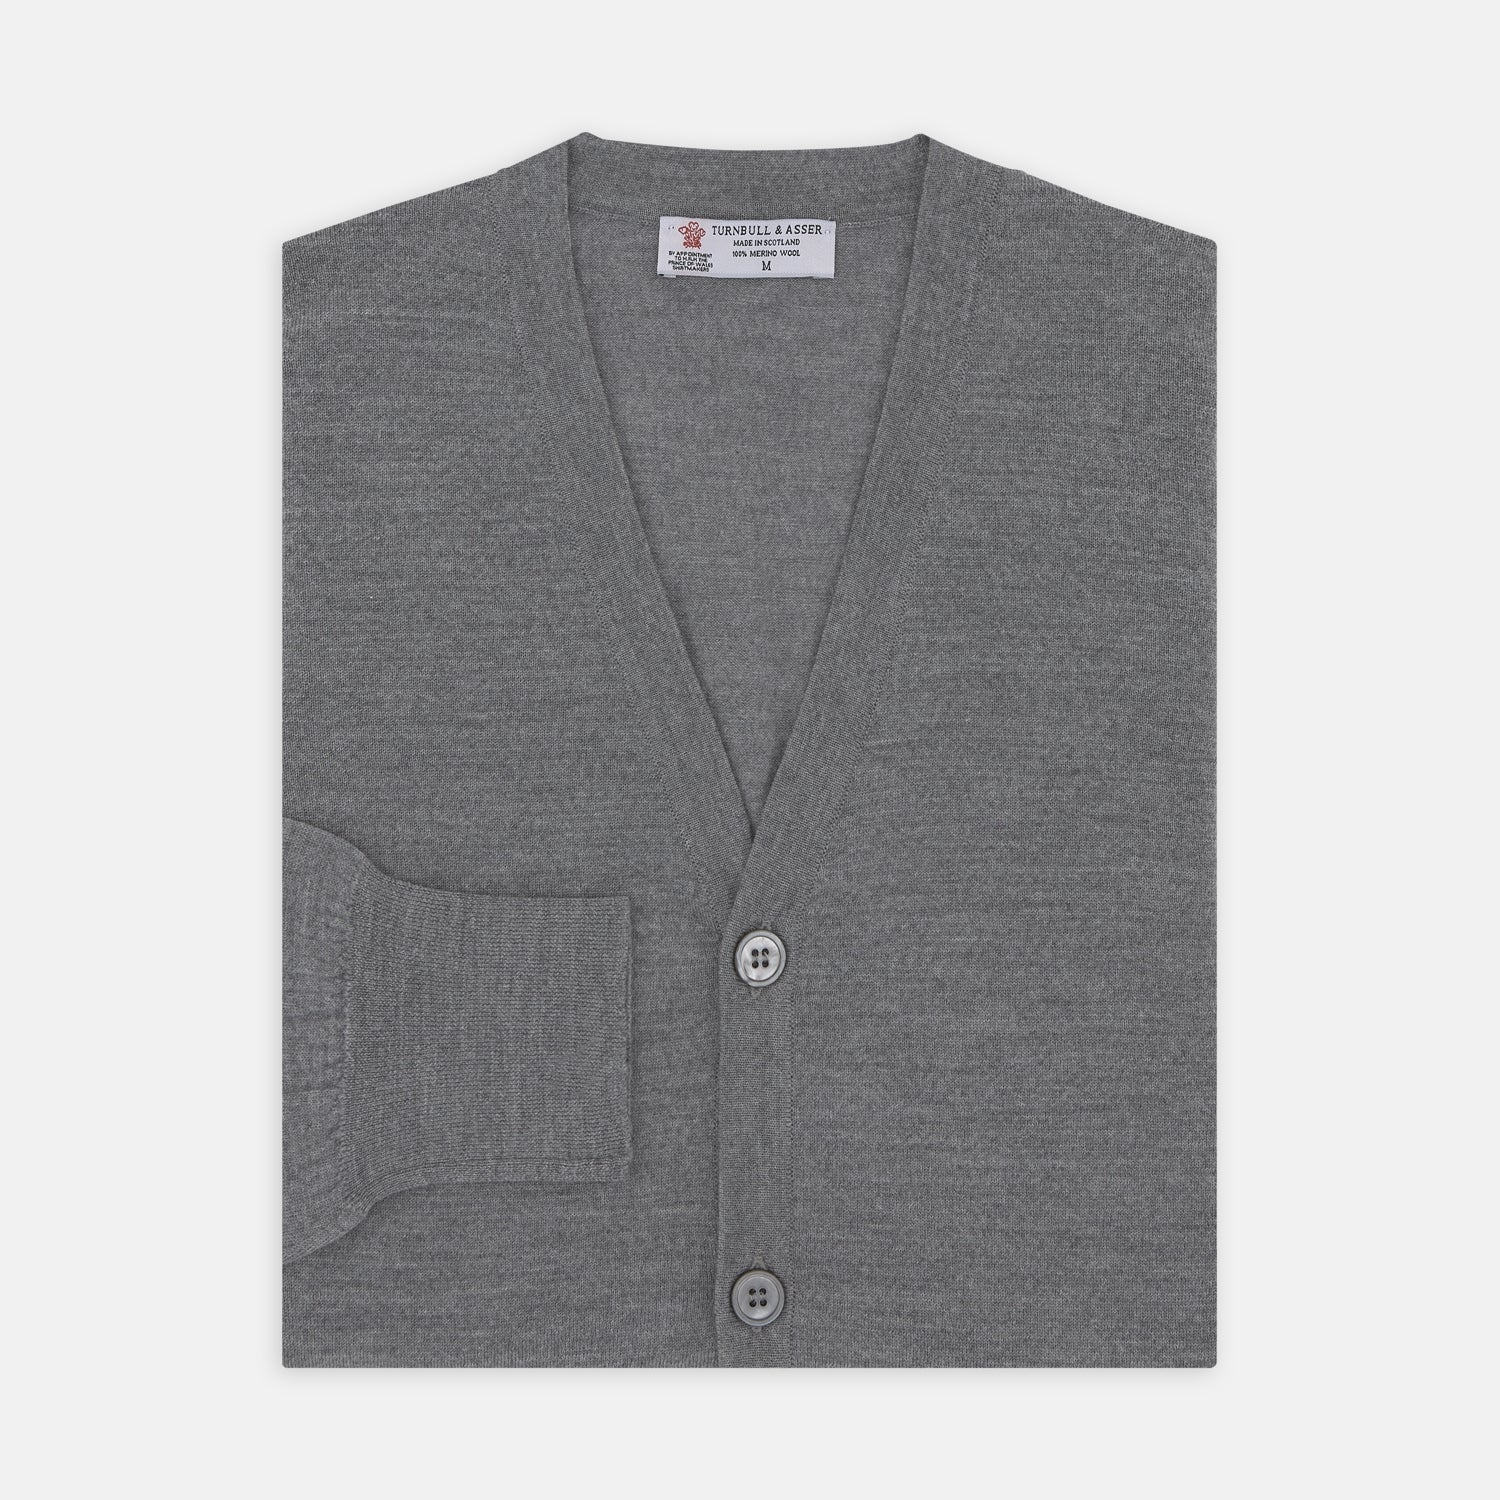 Flannel Grey Merino Wool Cardigan